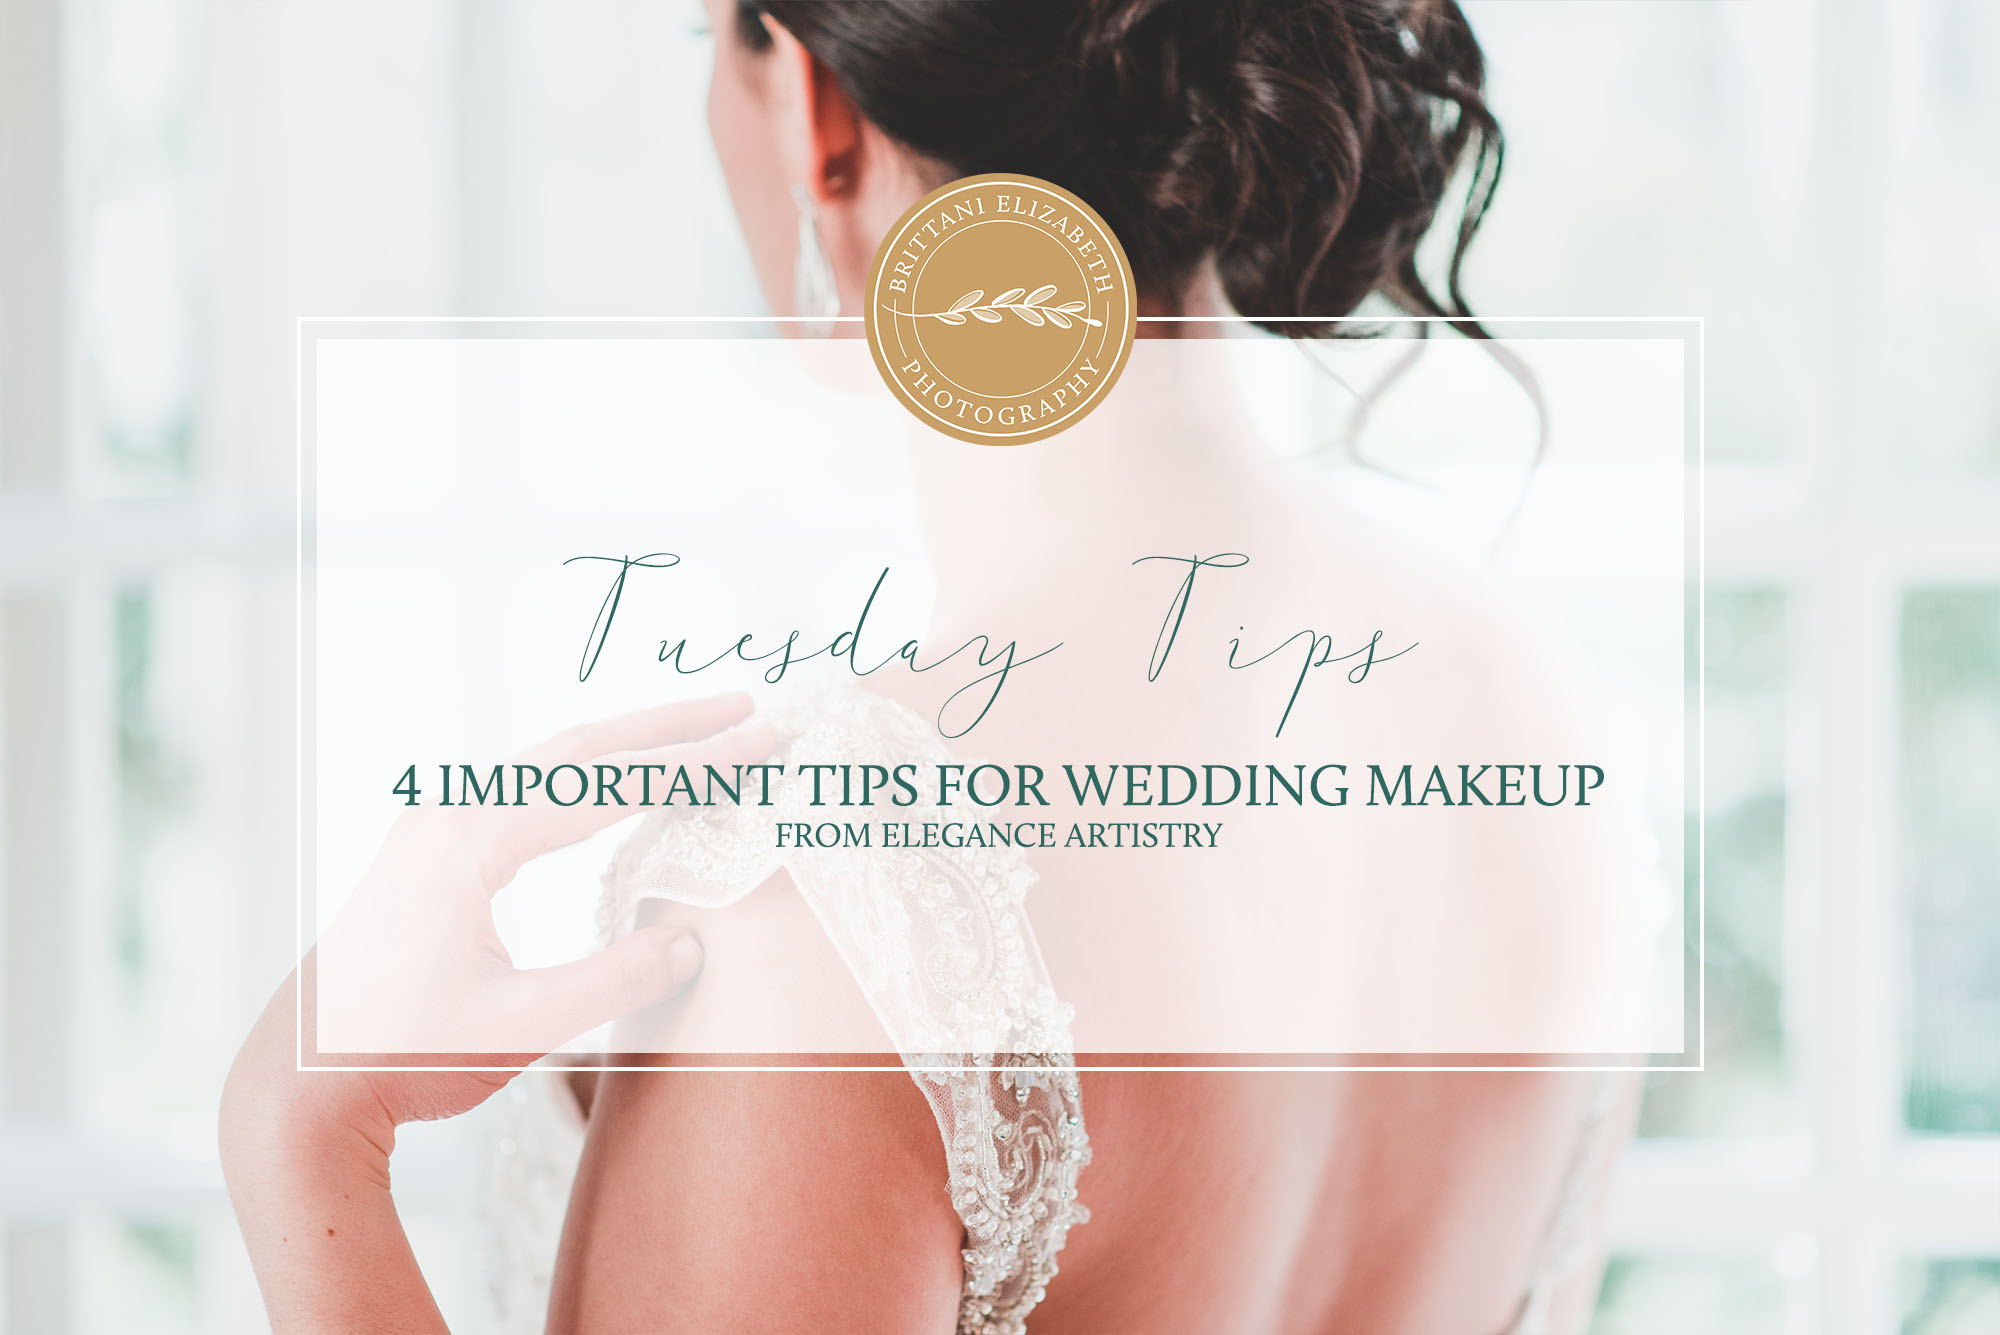 4 Important Tips for Wedding Makeup